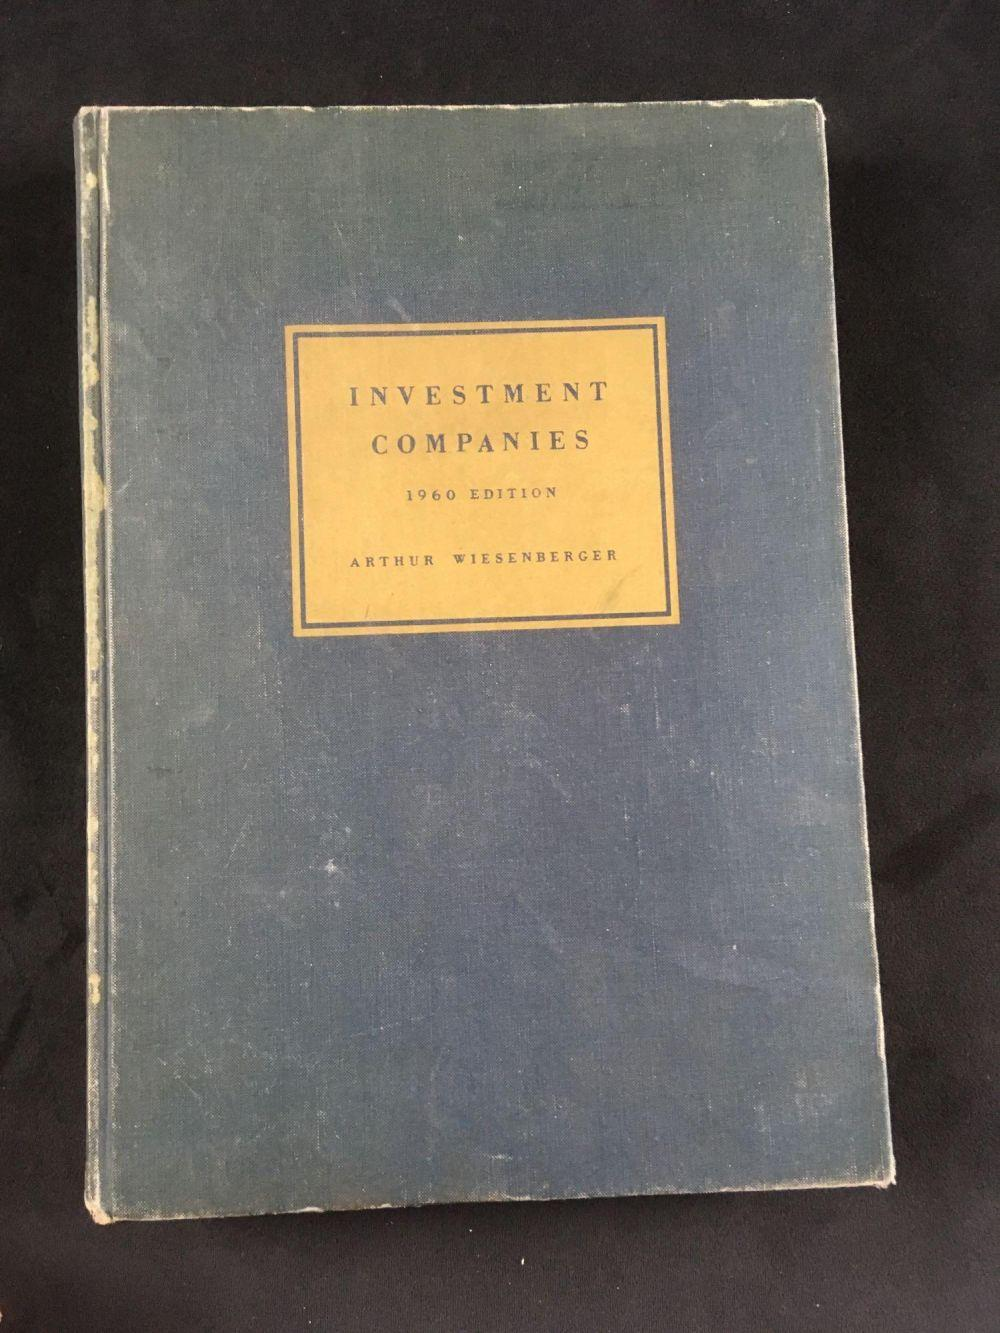 Vintage Book Investment Companies 1960 Edition